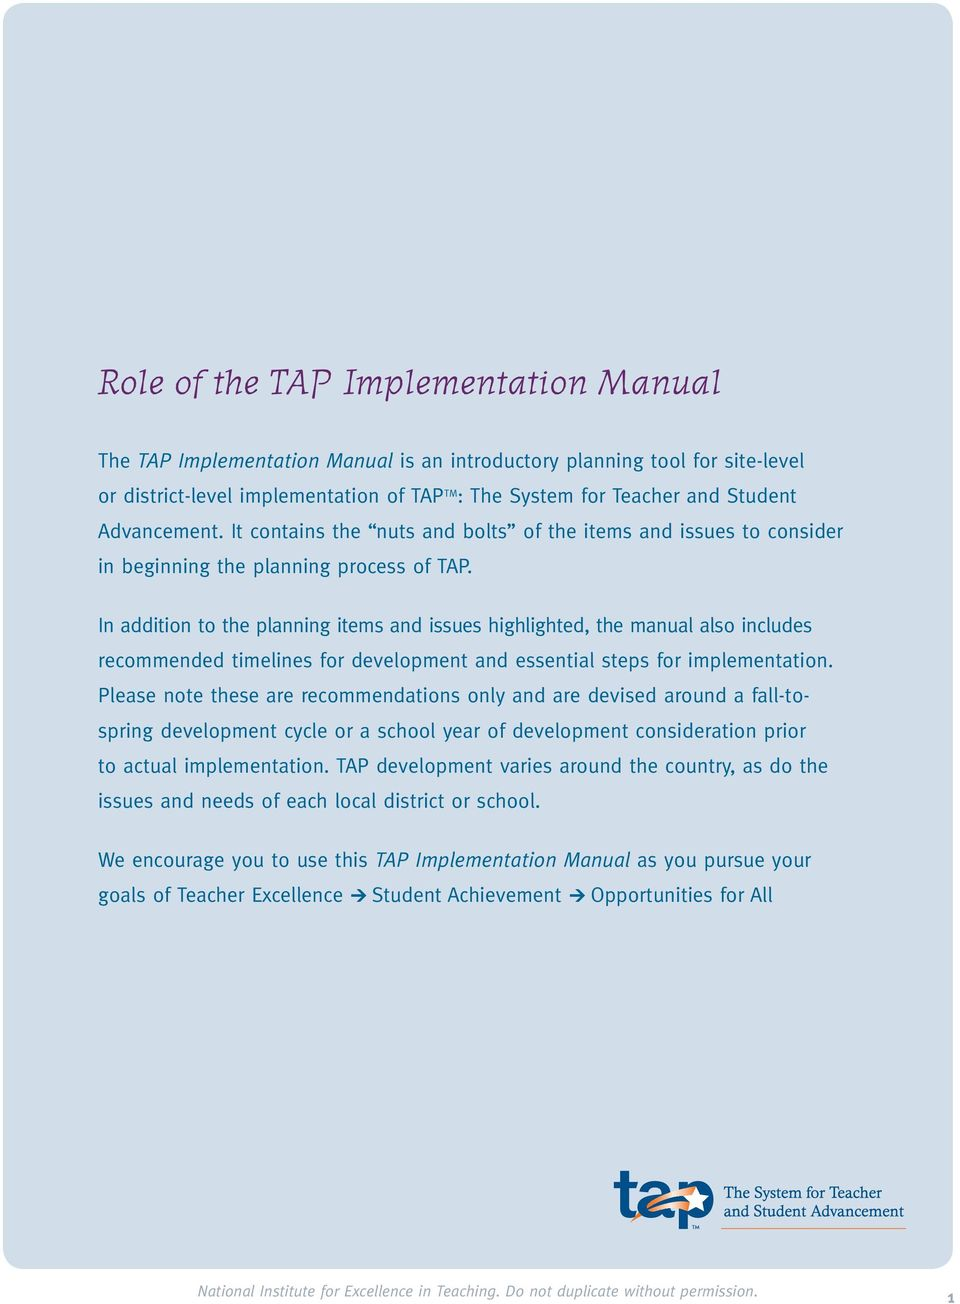 In addition to the planning items and issues highlighted, the manual also includes recommended timelines for development and essential steps for implementation.